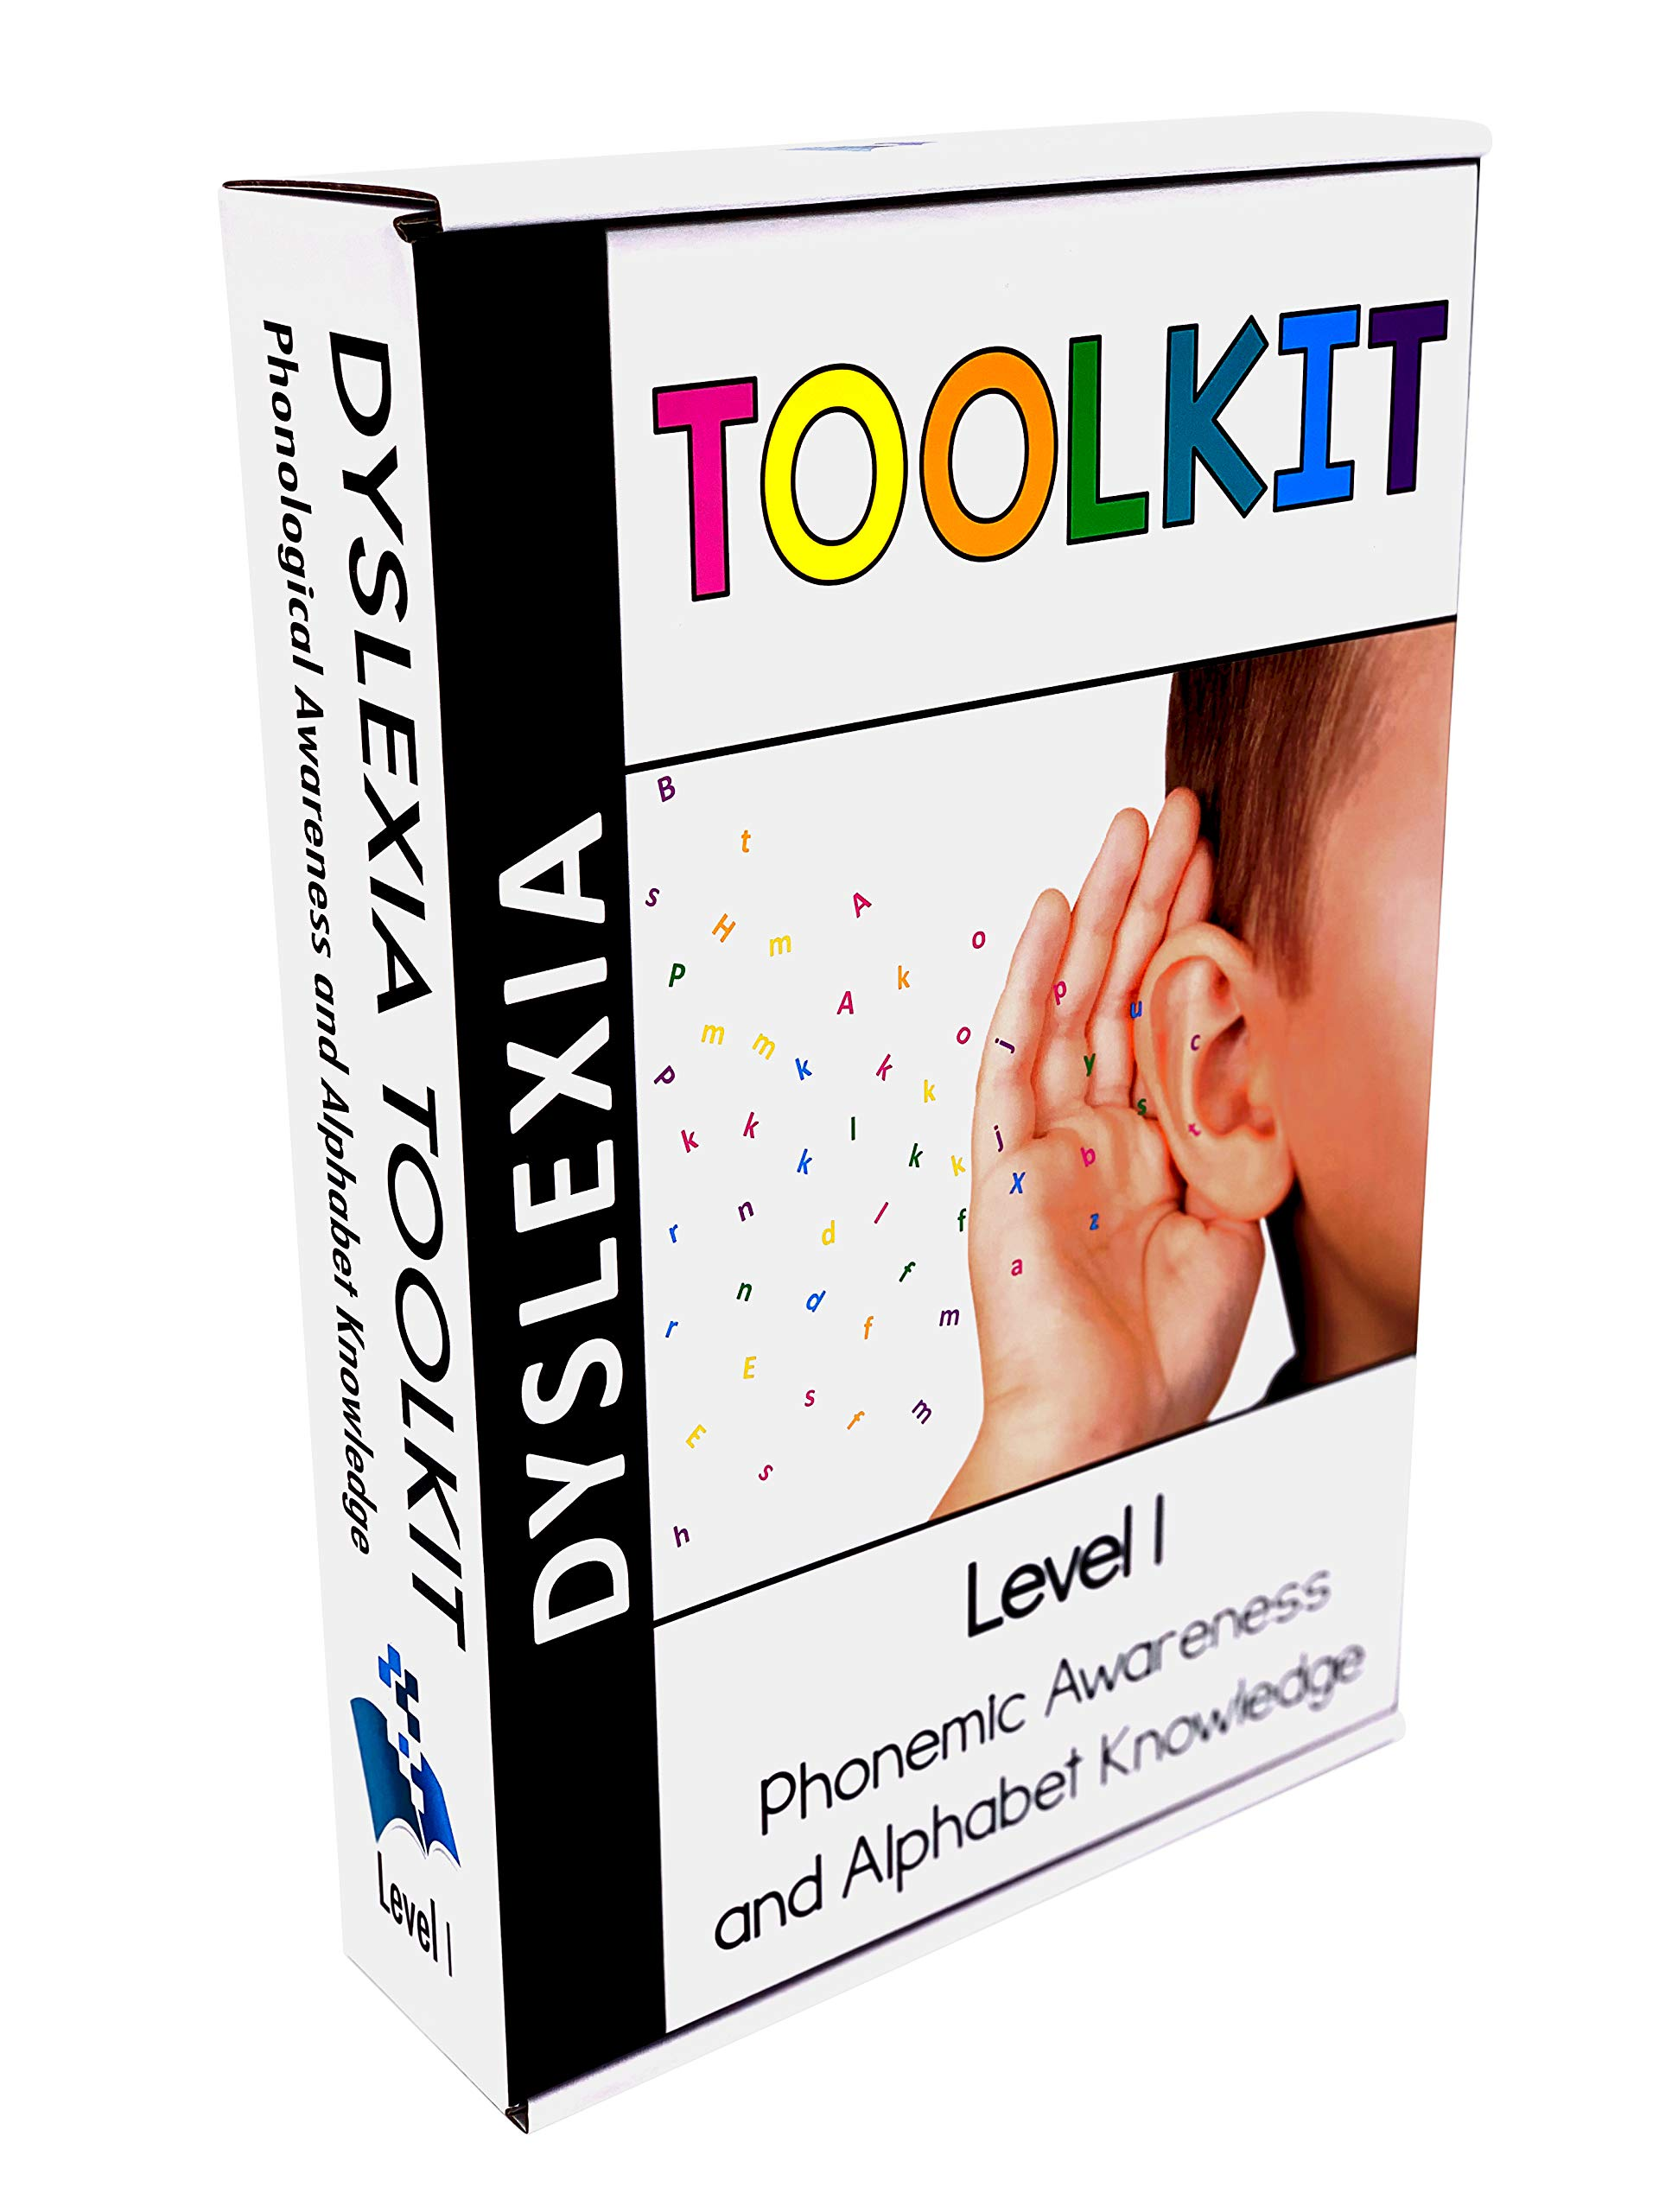 Dyslexia Toolkit | Best Tool Kit for Teaching Kids Phonemic Awareness & Alphabet Knowledge | Flash Cards, Games & Book for Home & School | Preschool, Kindergarten, 1st Grade & Up Reading Curriculum